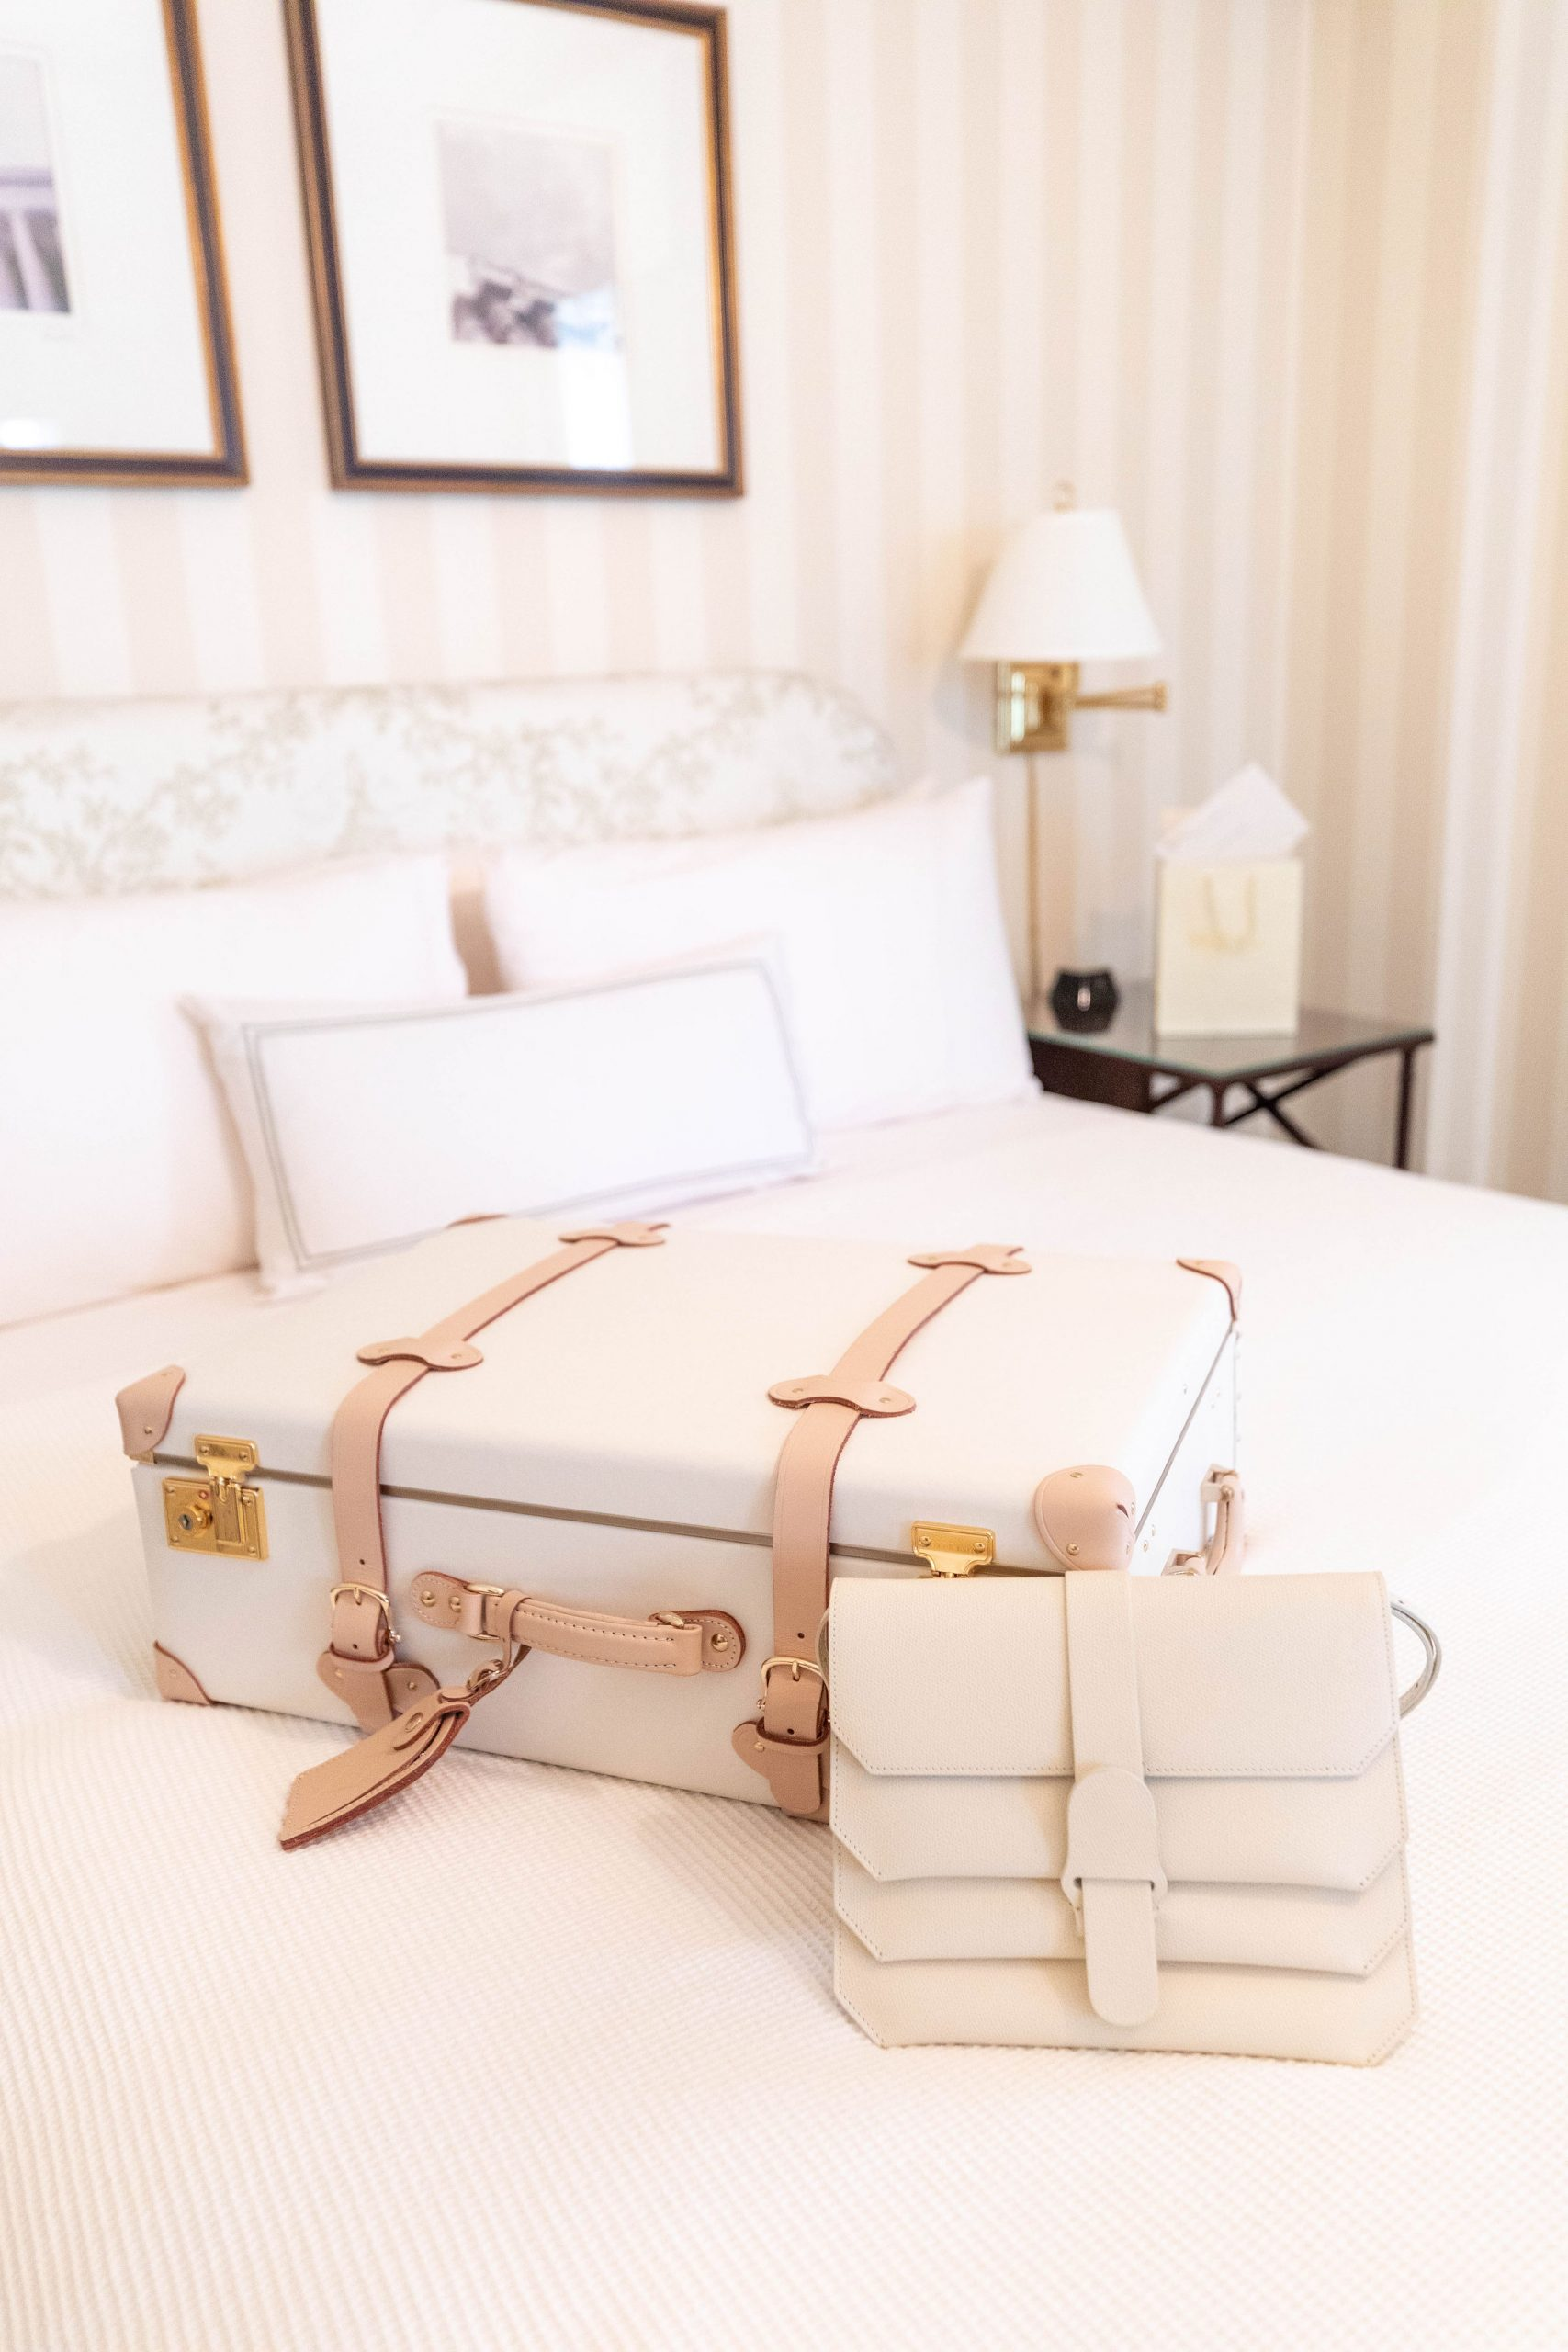 Steamline Luggage at The Hay-Adams 5-Star Luxury Hotel in Washington D.C. Photographed & Written by Luxury Travel & Lifestyle Writer Annie Fairfax